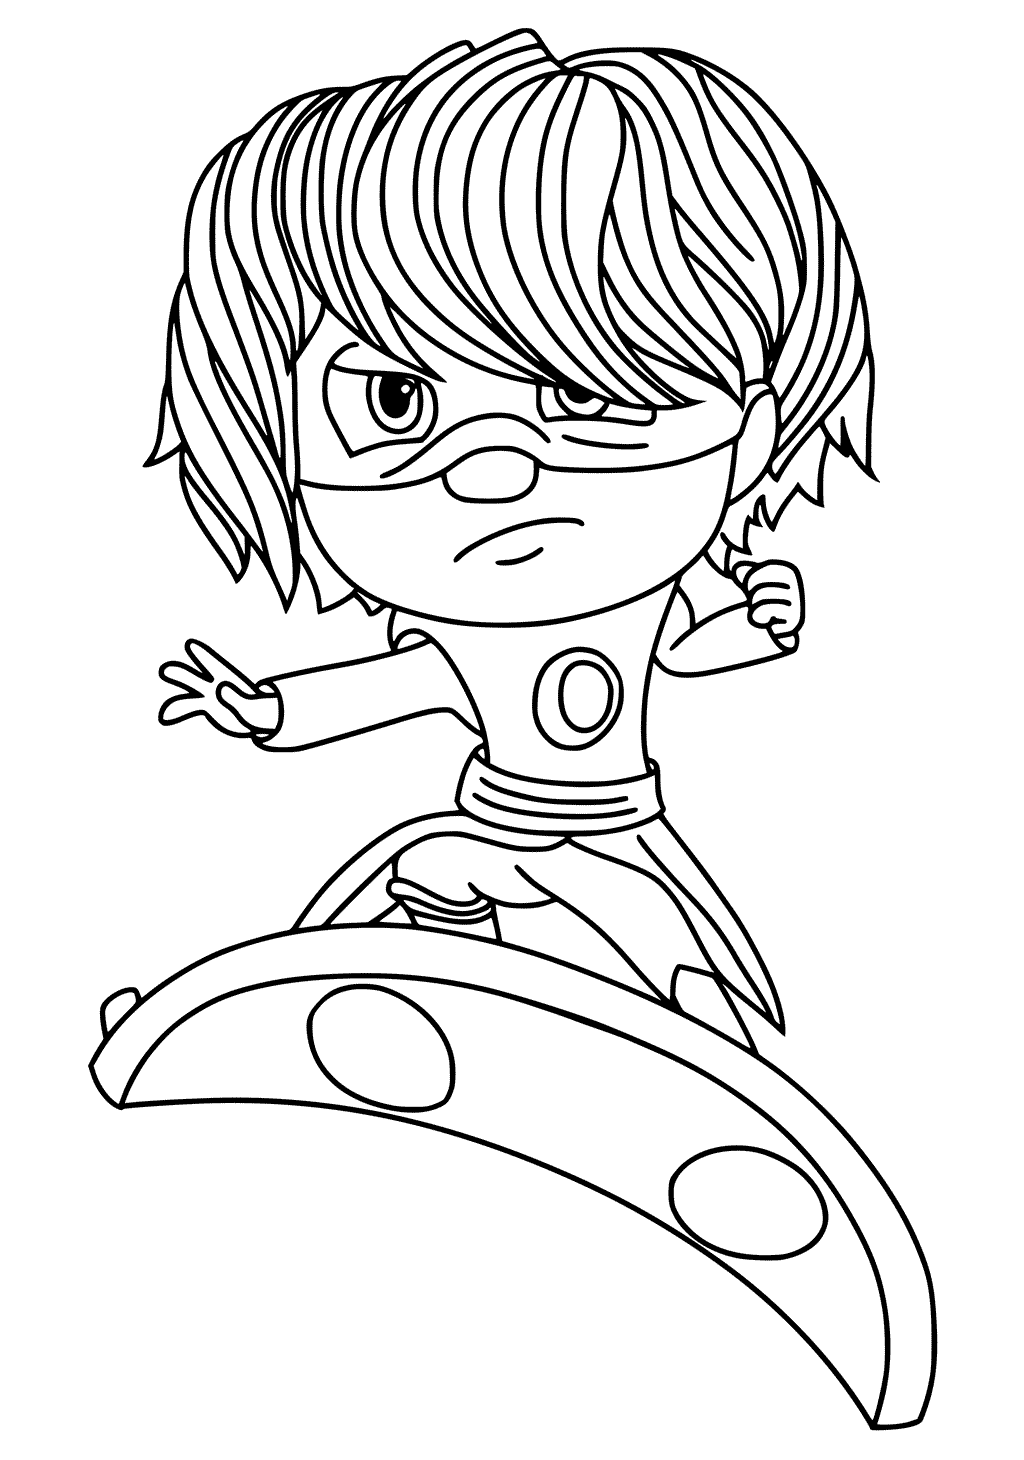 Romeo Coloring Pages at GetDrawings | Free download